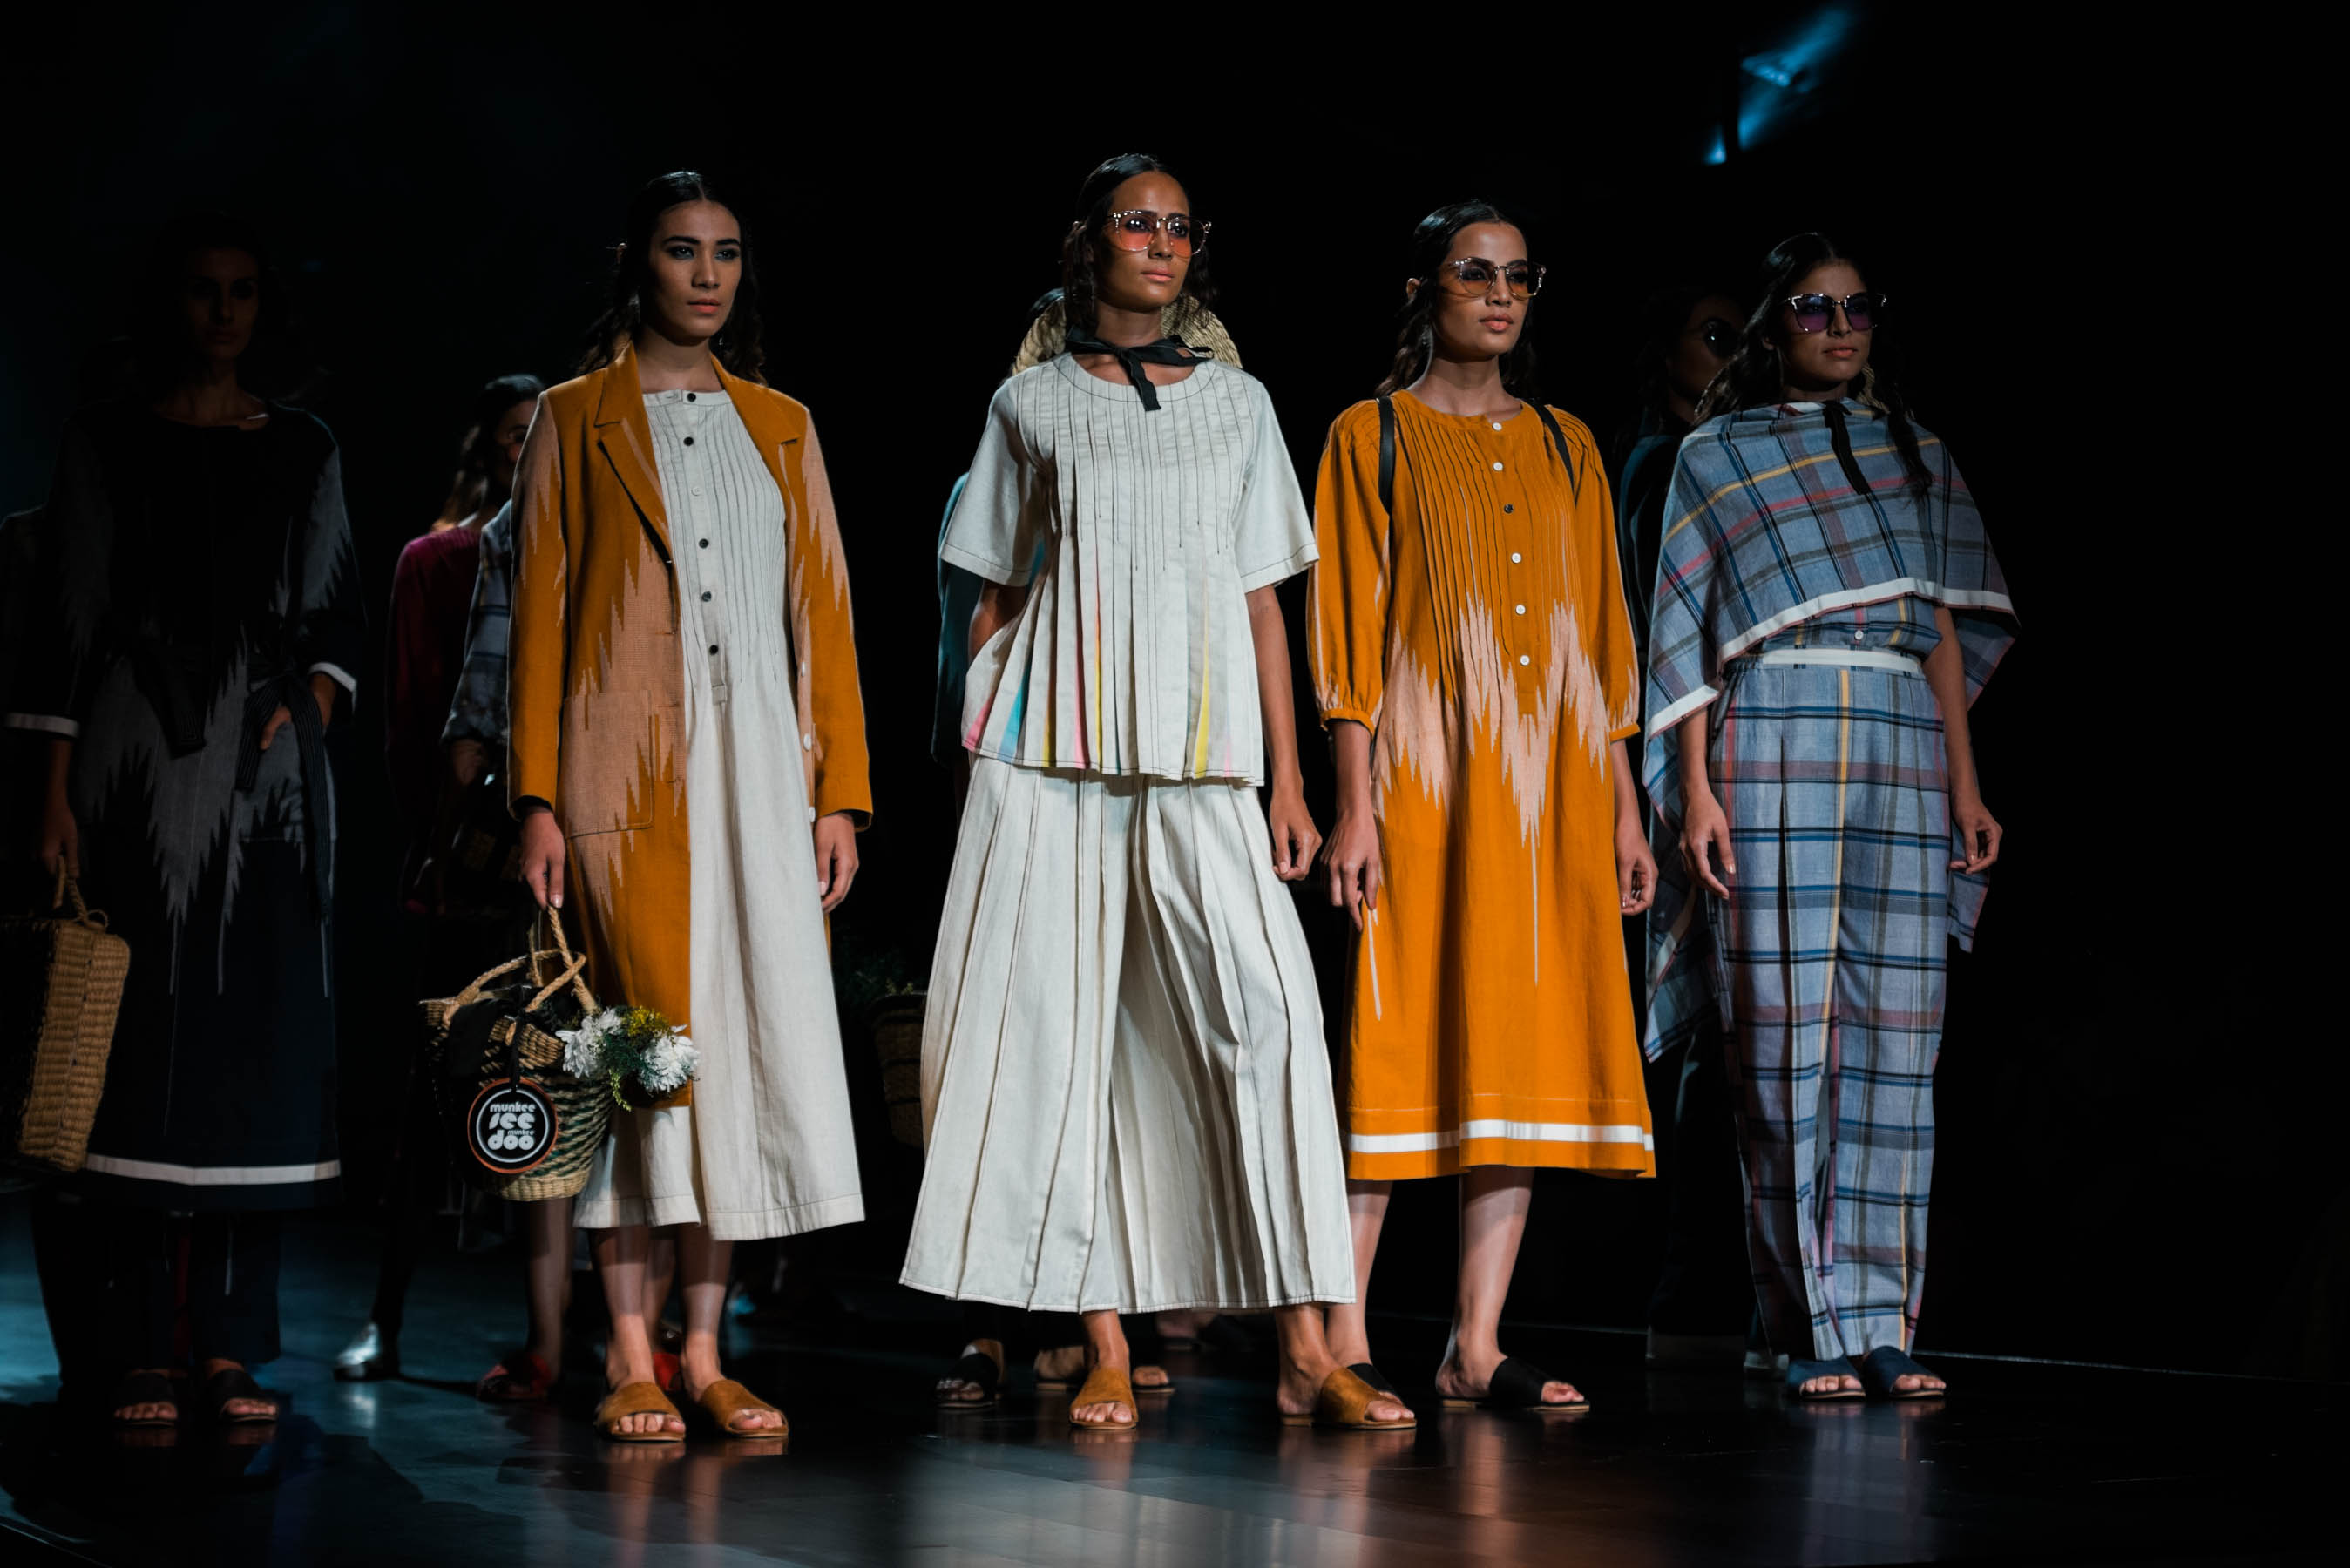 Naina Redhu, Naina.co, Munkee See Munkee Doo, MunkeeSeeMunkeeDoo, Fashion Designer, FDCI, Lotus MakeUp India Fashion Week Spring Summer 2019, LMIFWSS19, LMIFW, India Fashion Week, Fashion Week Delhi, MadeInIndia, Made In India, EyesForFashion, Professional Photographer, Blogger, Fashion Photographer, Lifestyle Photographer, Luxury Photographer, Delhi Photographer, Gurgaon Photographer, Delhi Blogger, Gurgaon Blogger, Indian Blogger